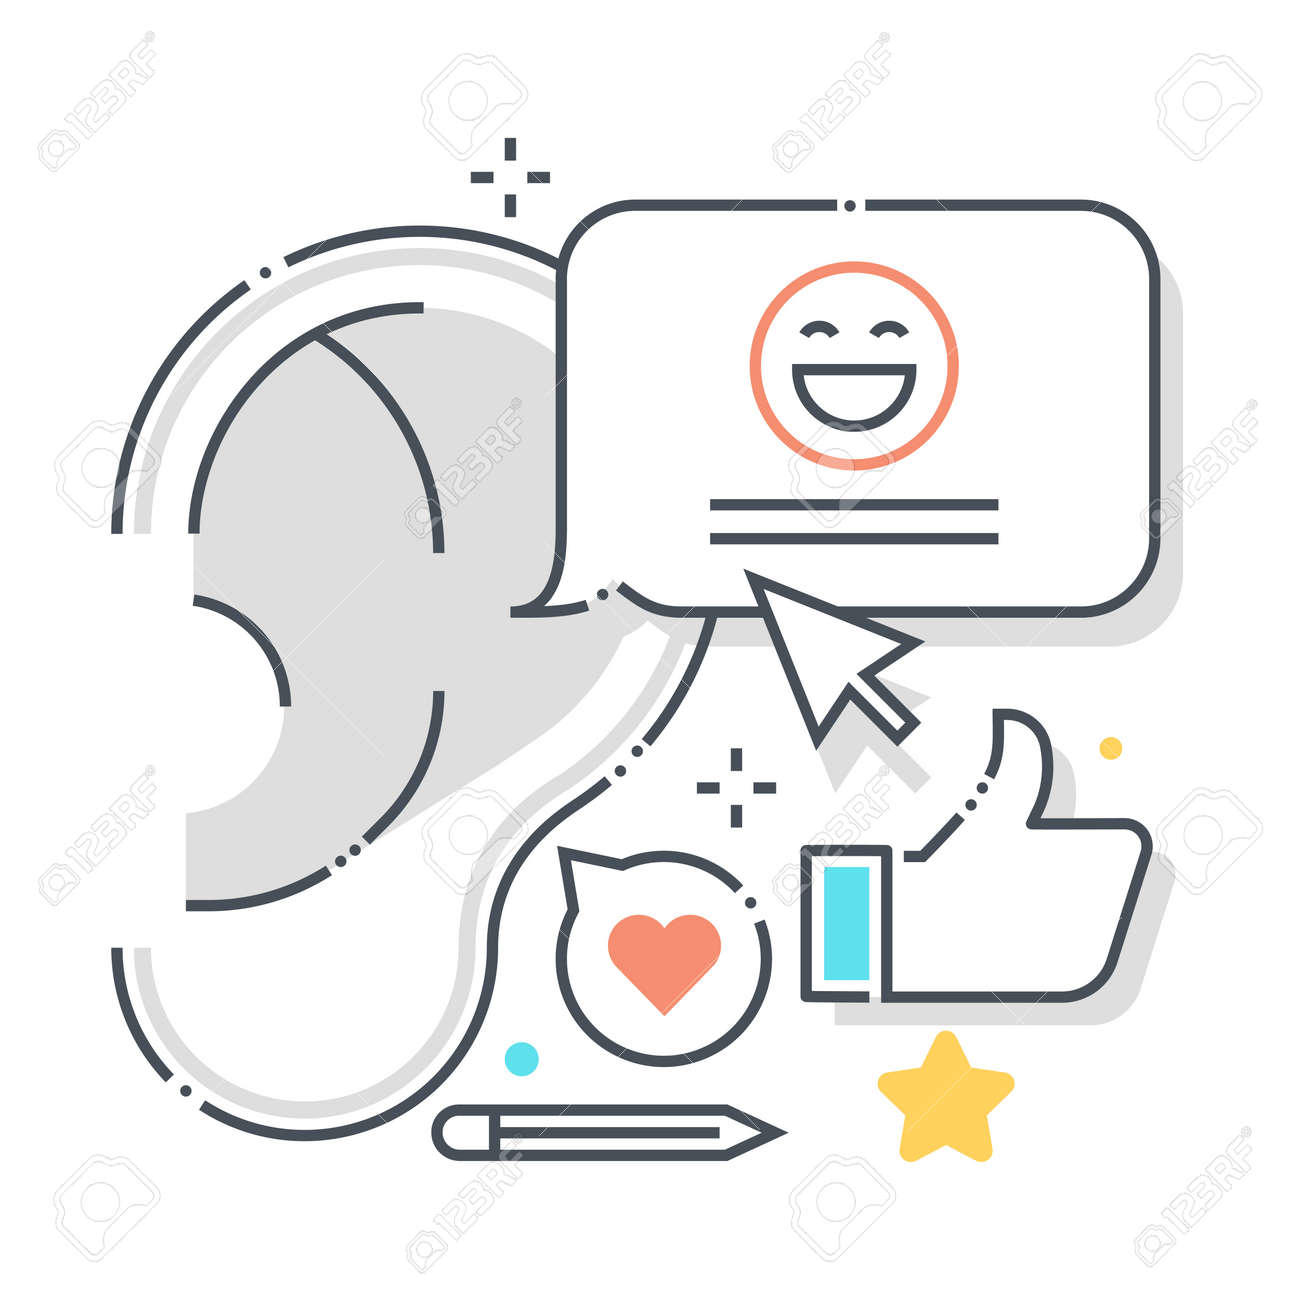 Buzz marketing related color line vector icon, illustration. The icon is about listen, talk, whisper, ear, hand, gossip. The composition is infinitely scalable. - 163698140